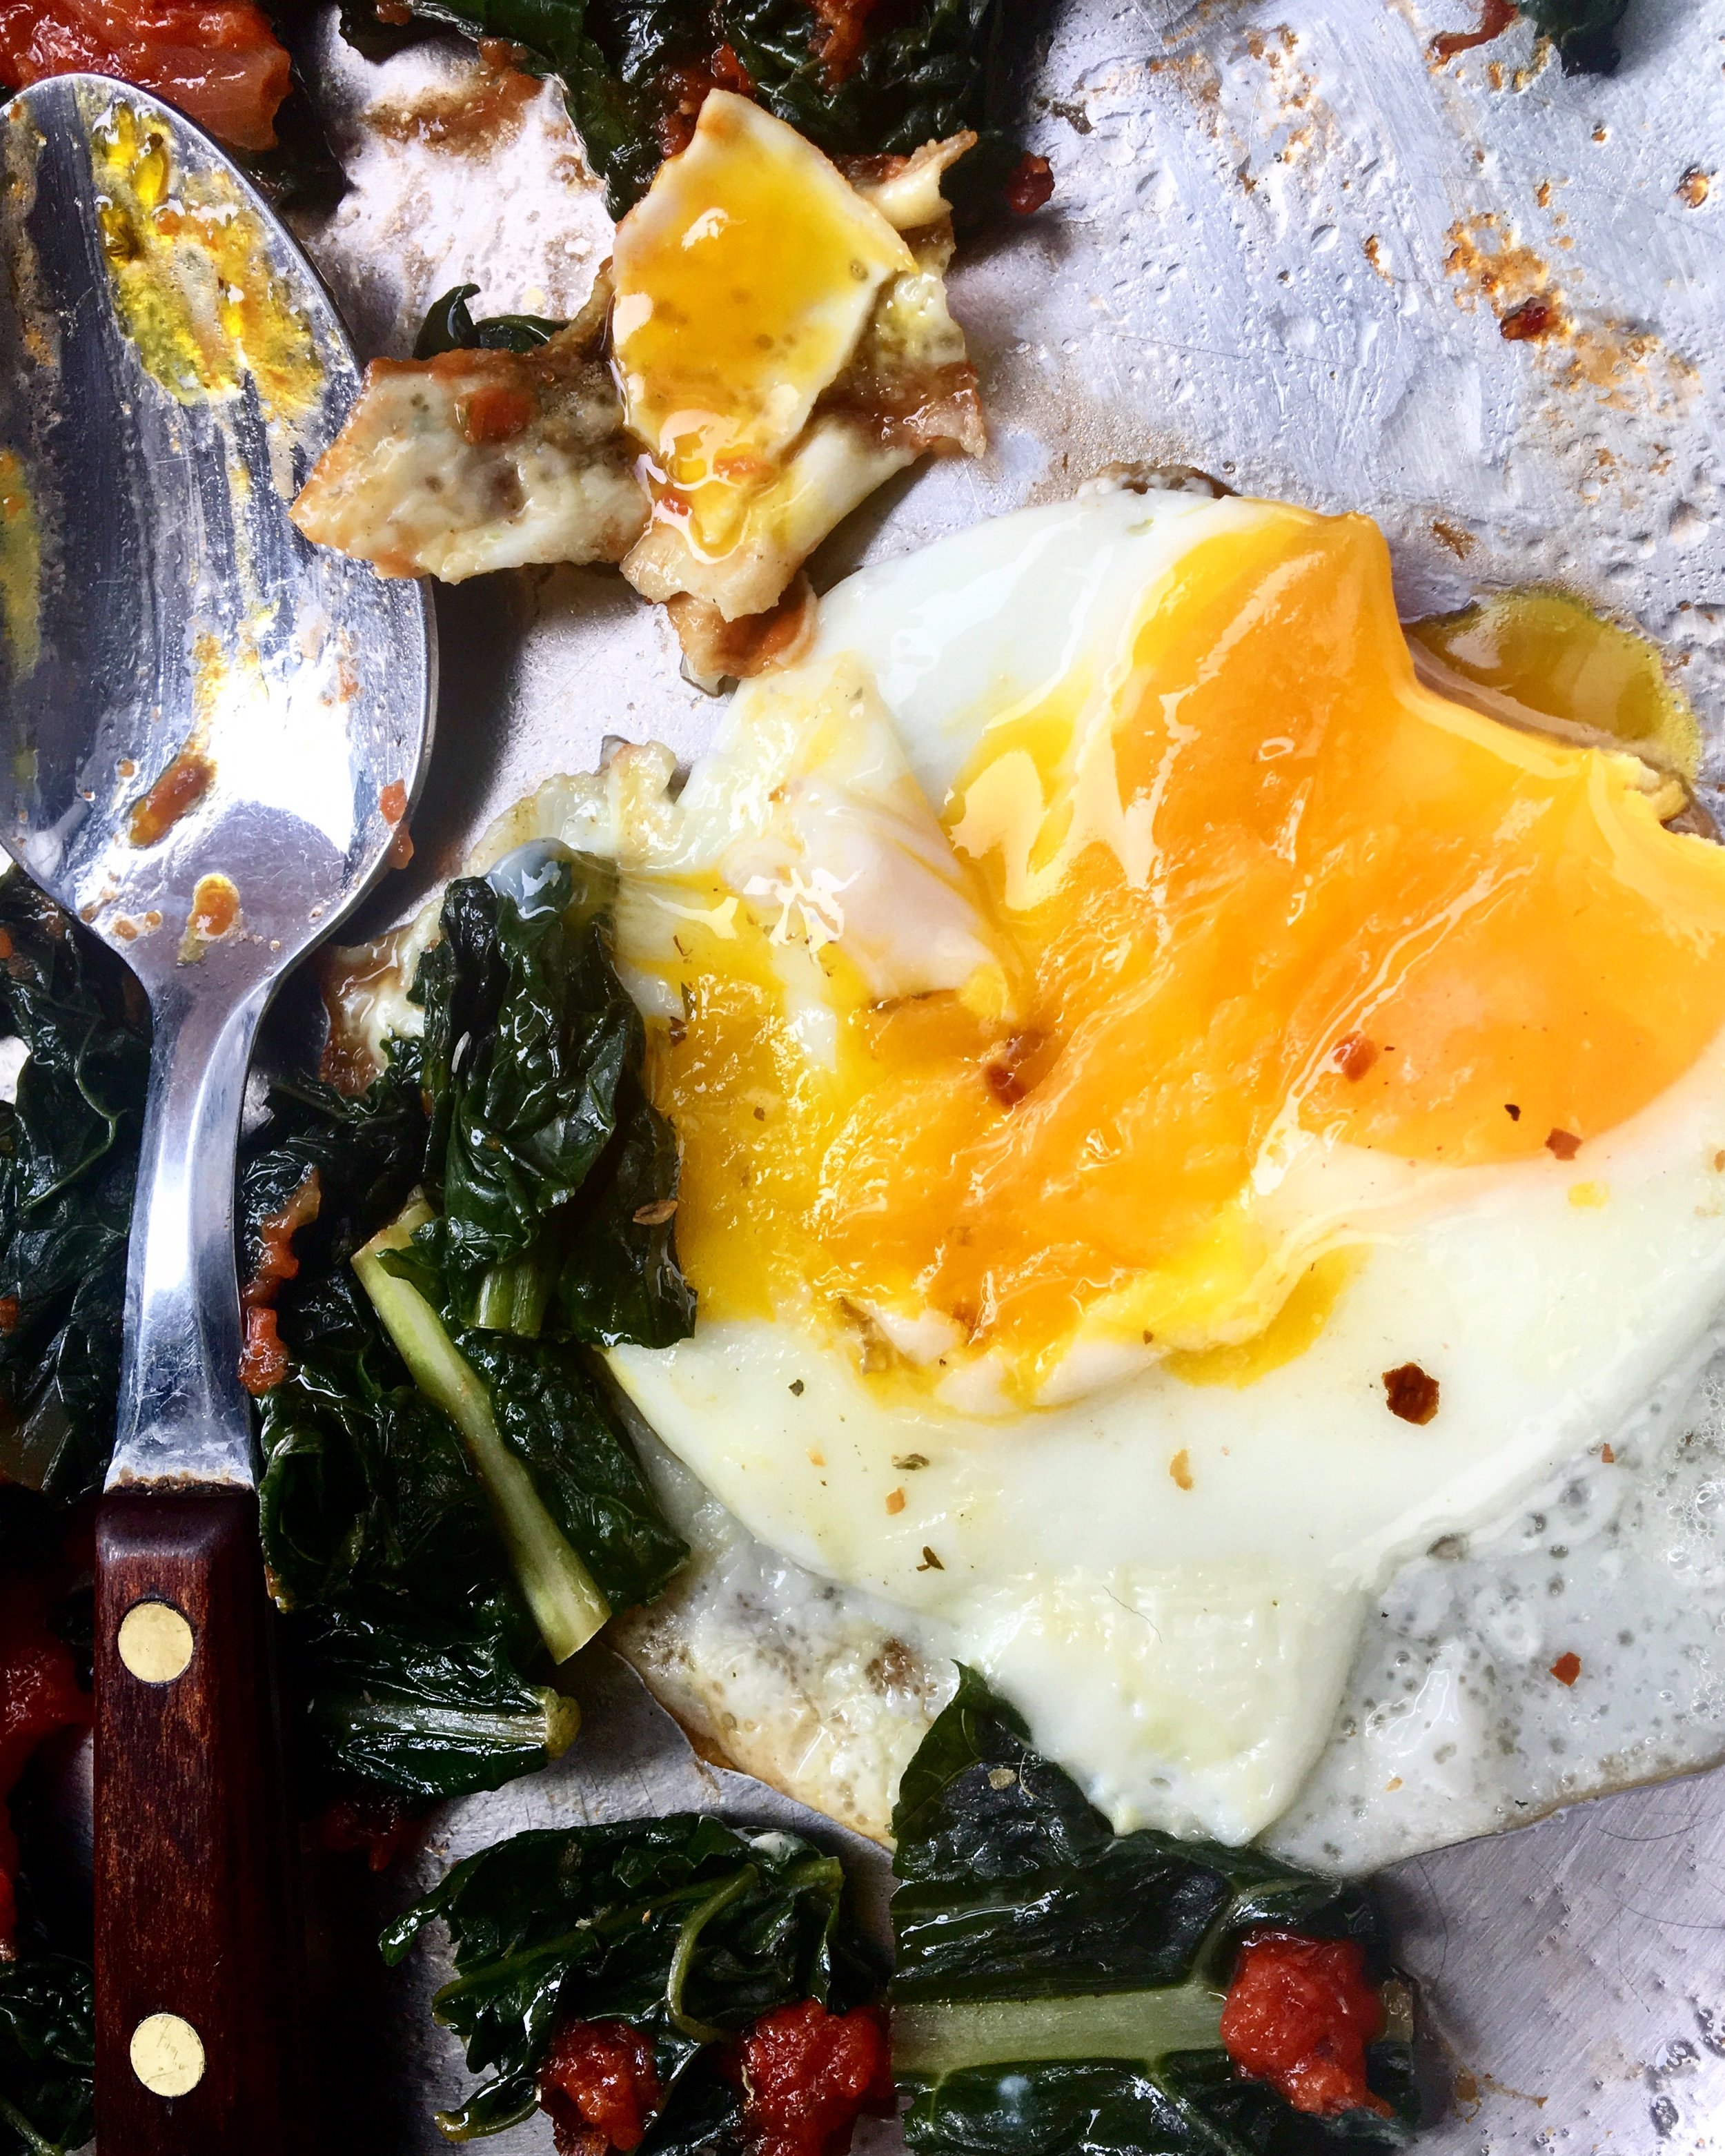 The First Bite: Kale / Sauce / Eggs: $1.68 for breakfast at home